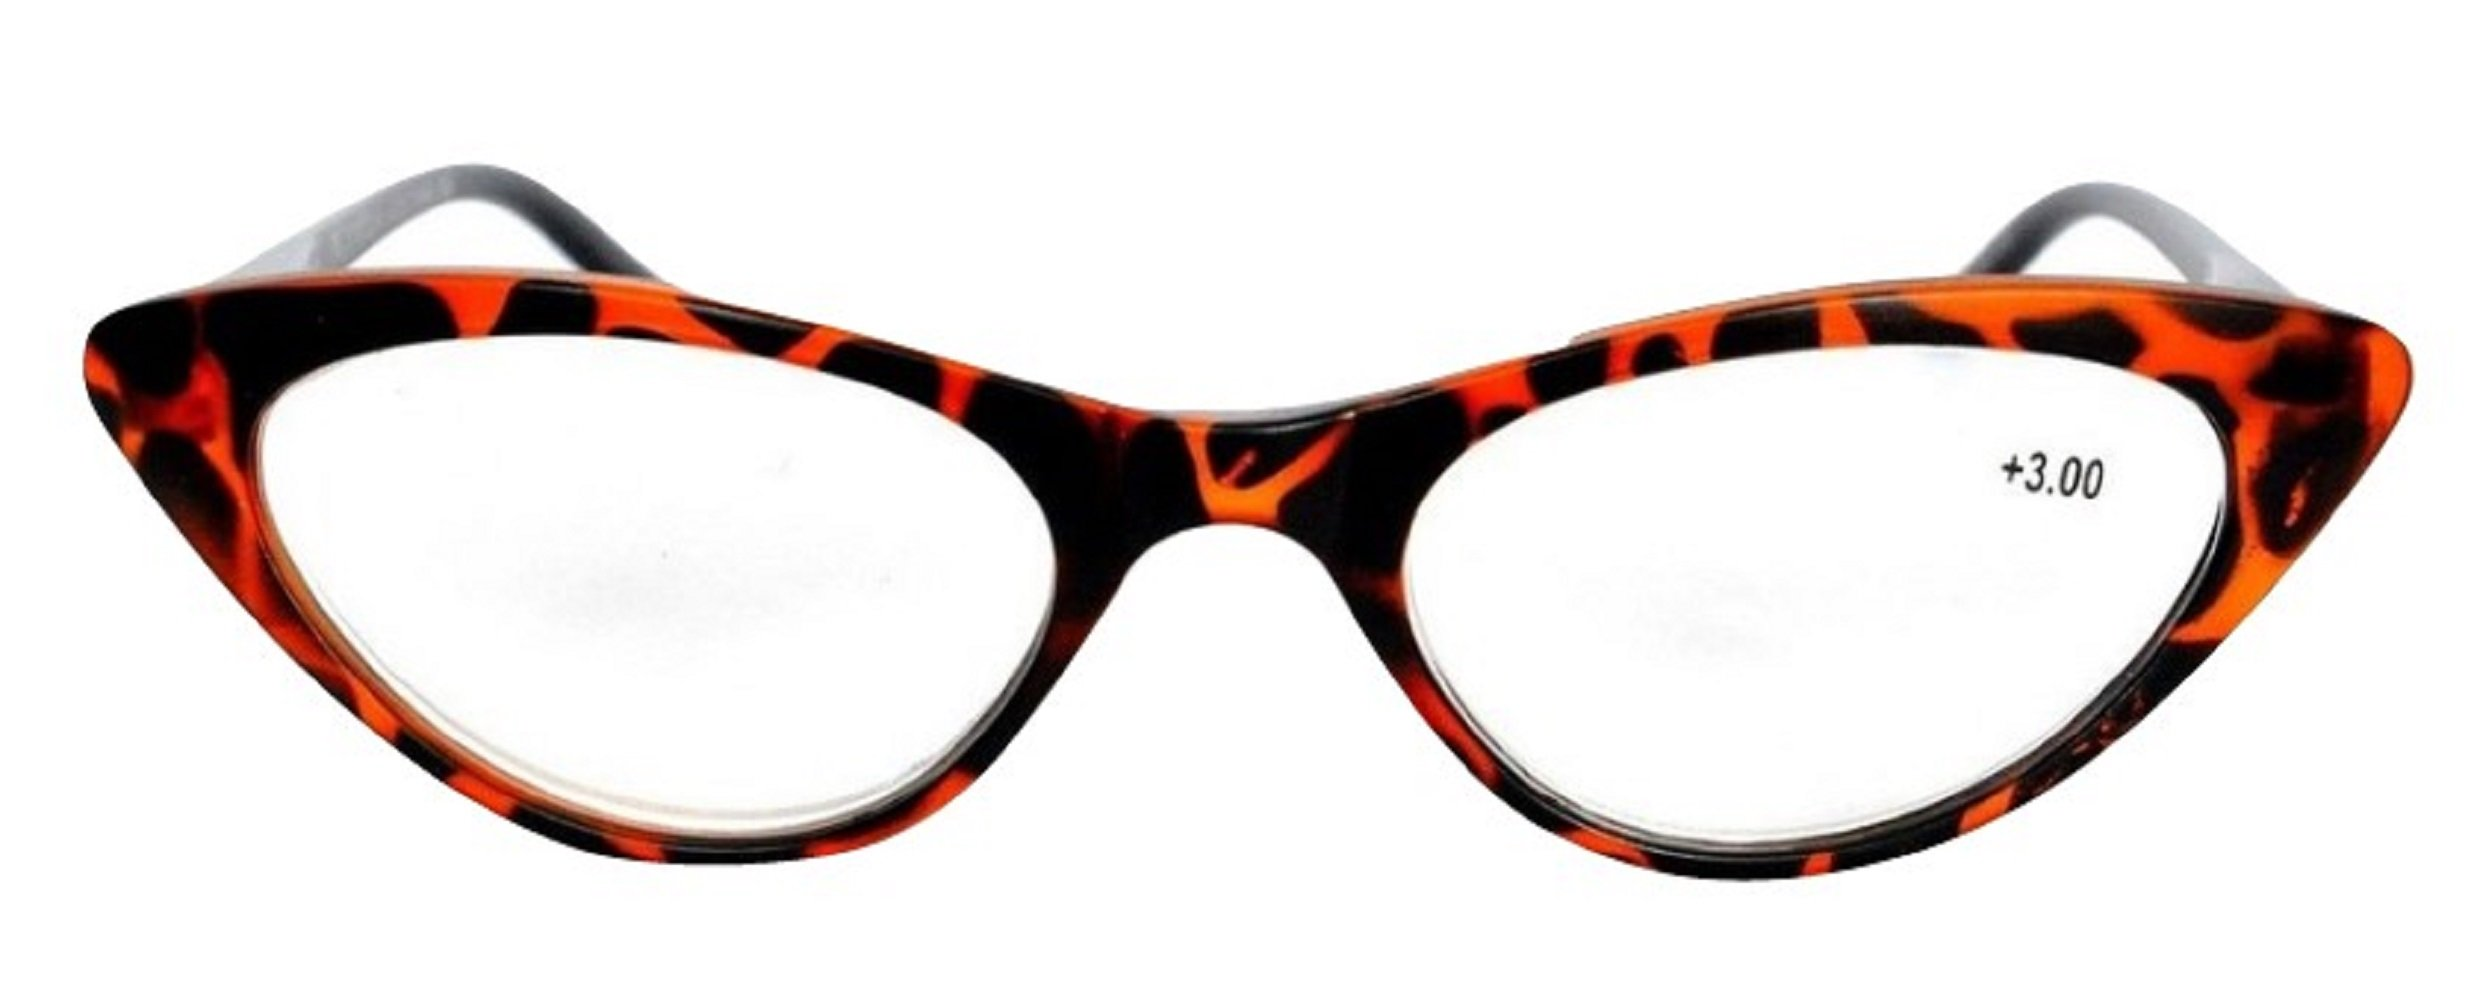 fff345b7321 Amazon.com  The Cat s Meow Colorful Ladies Cat Eye Reading Glasses ...